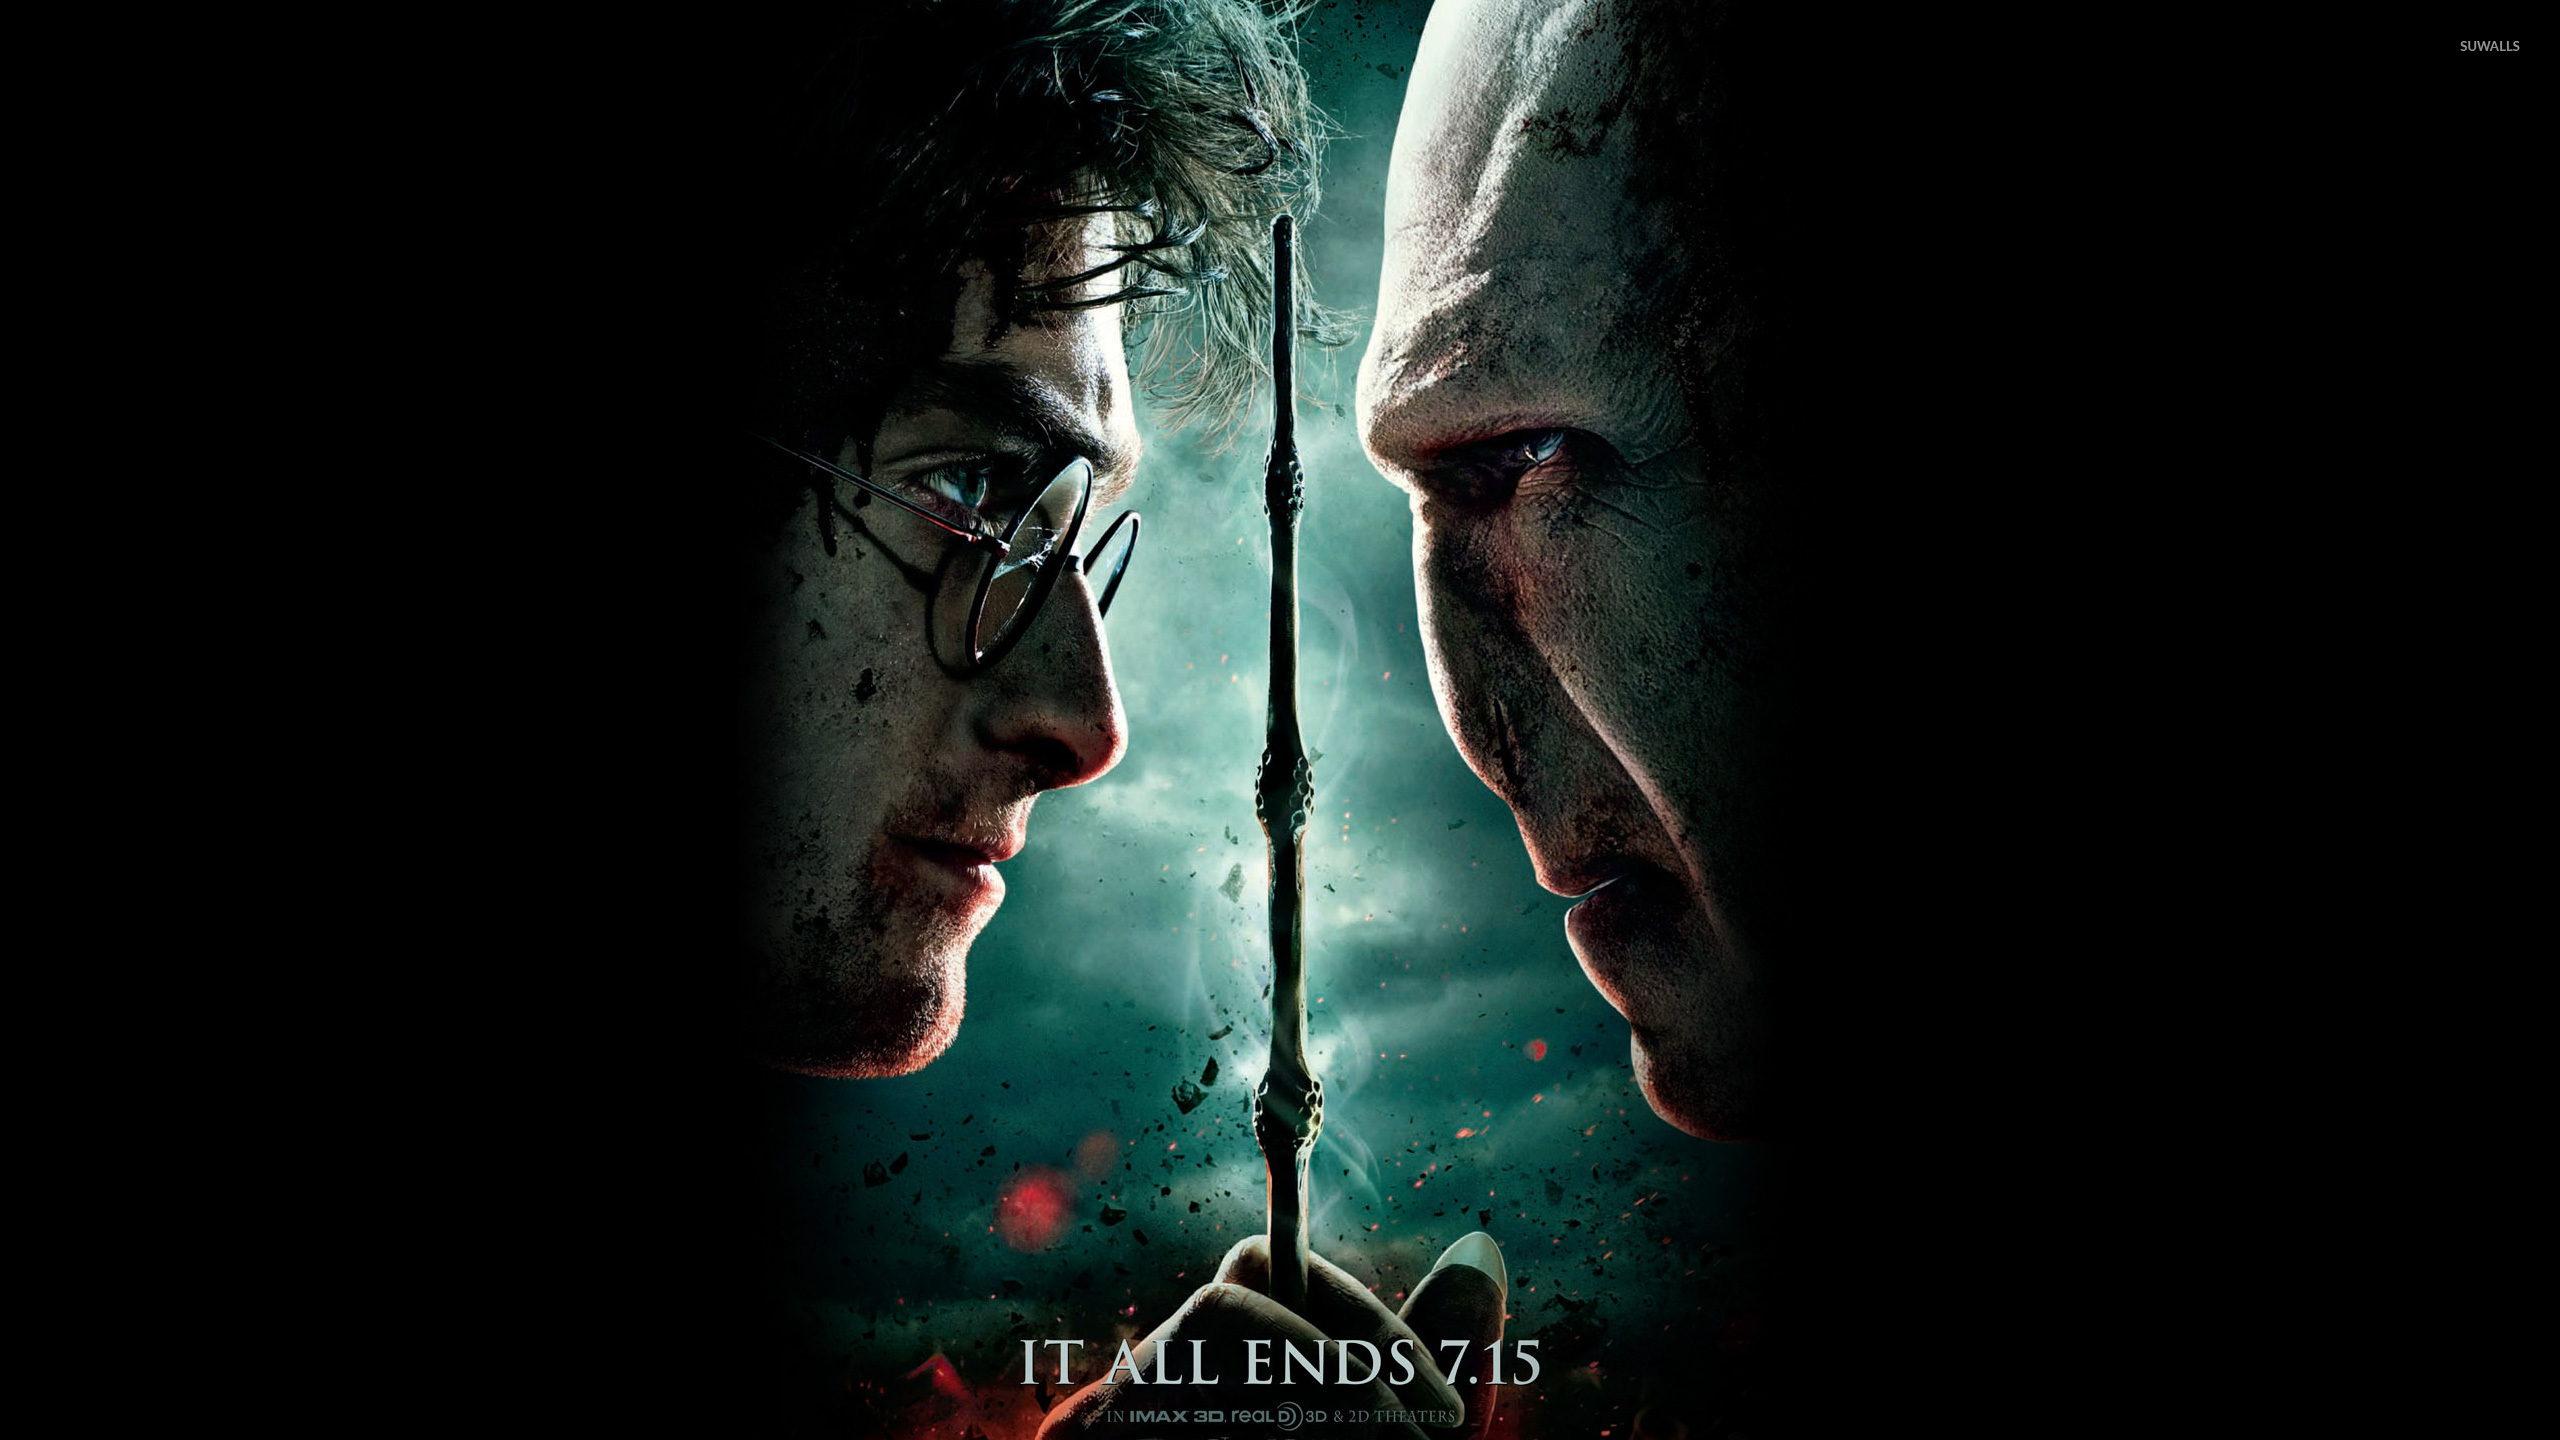 harry potter and the deathly hallows part 2 3 wallpaper